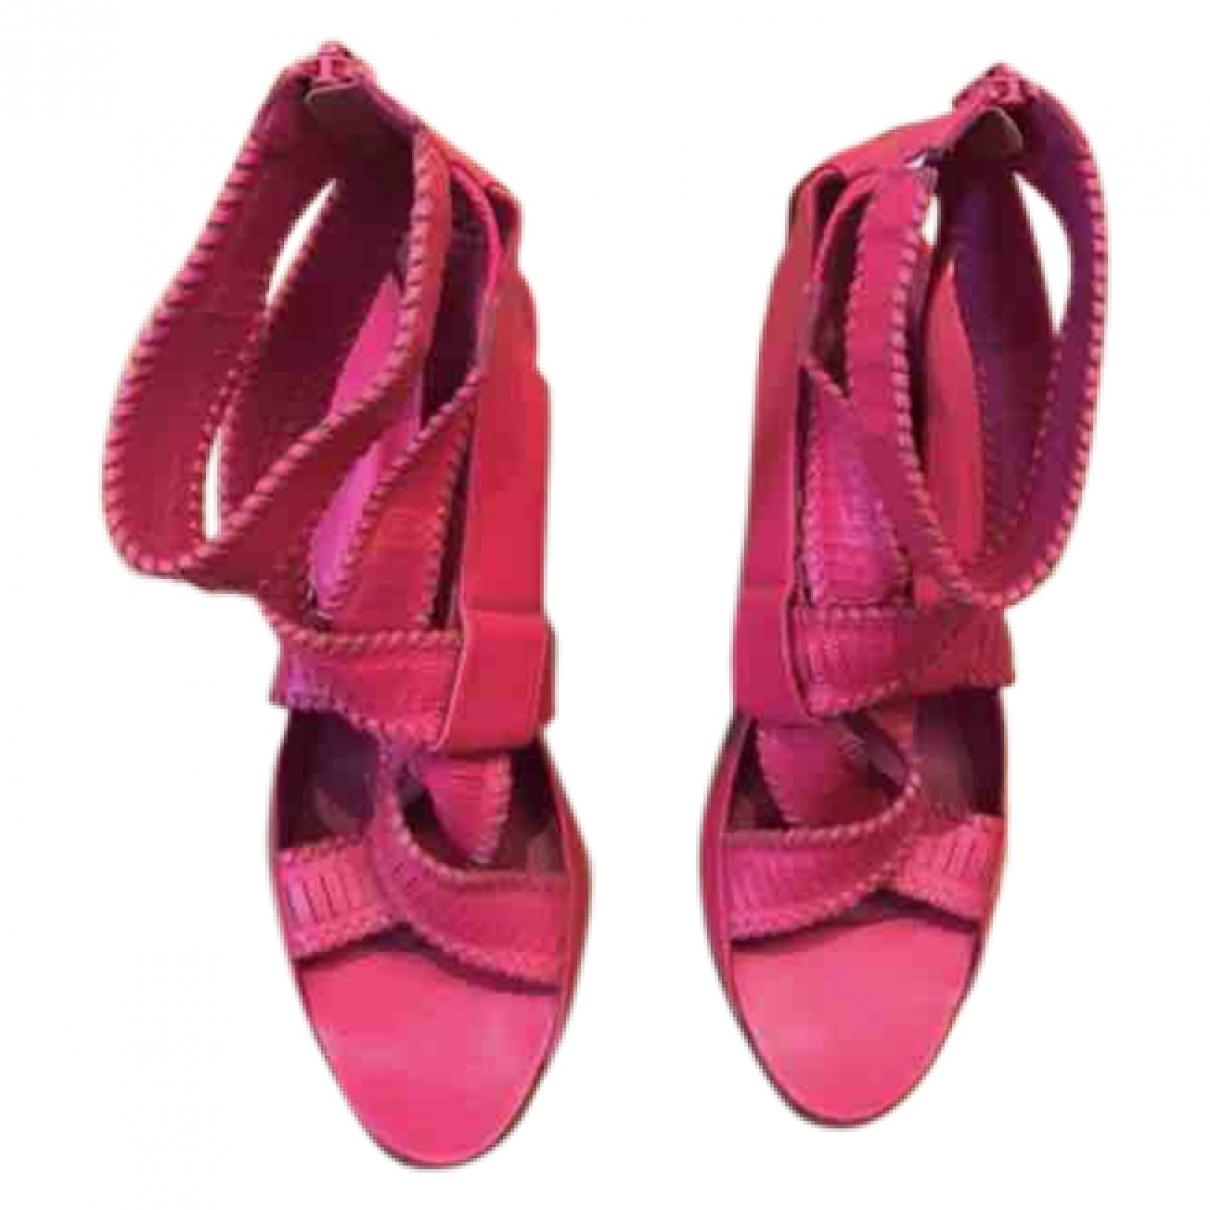 Givenchy \N Pink Leather Sandals for Women 39 EU